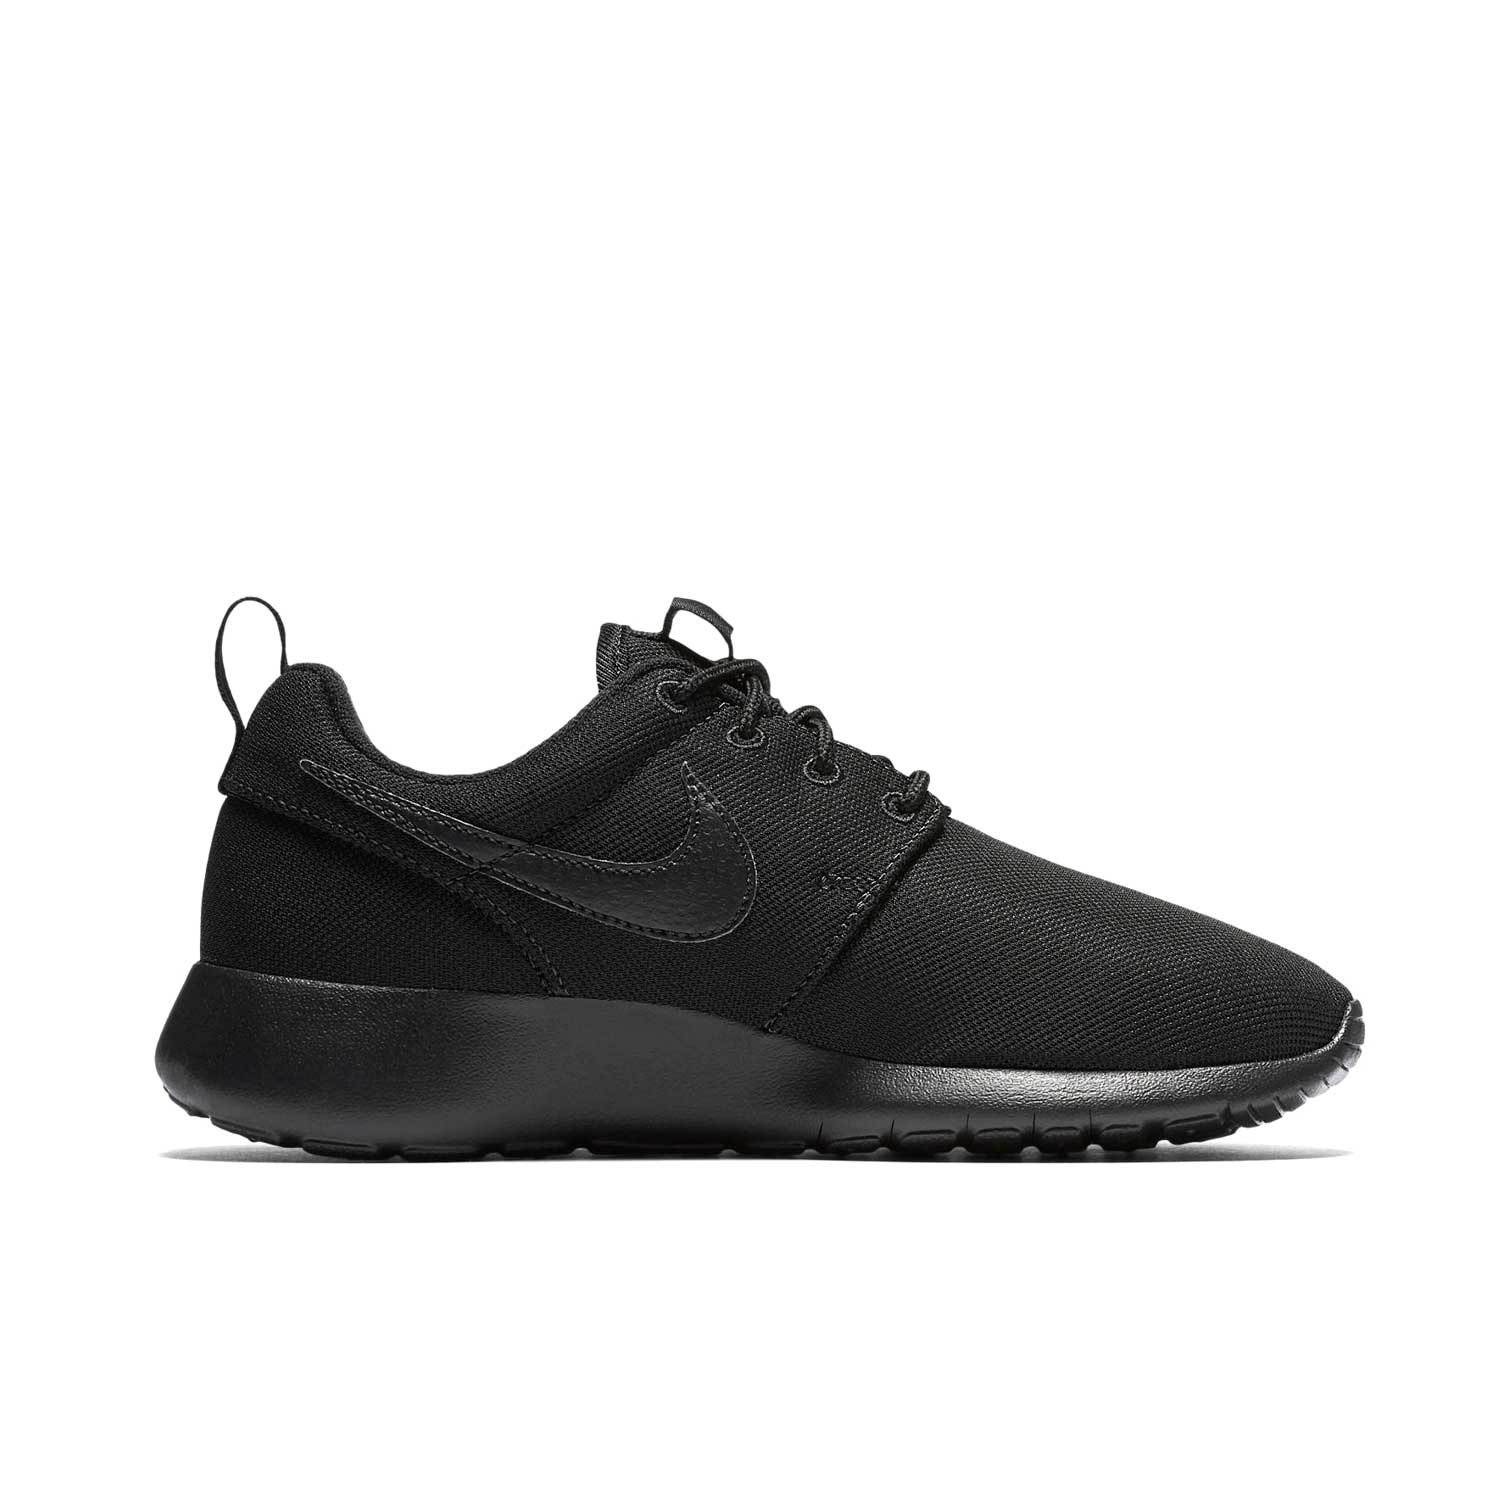 Nike Roshe One All Black 599728 031